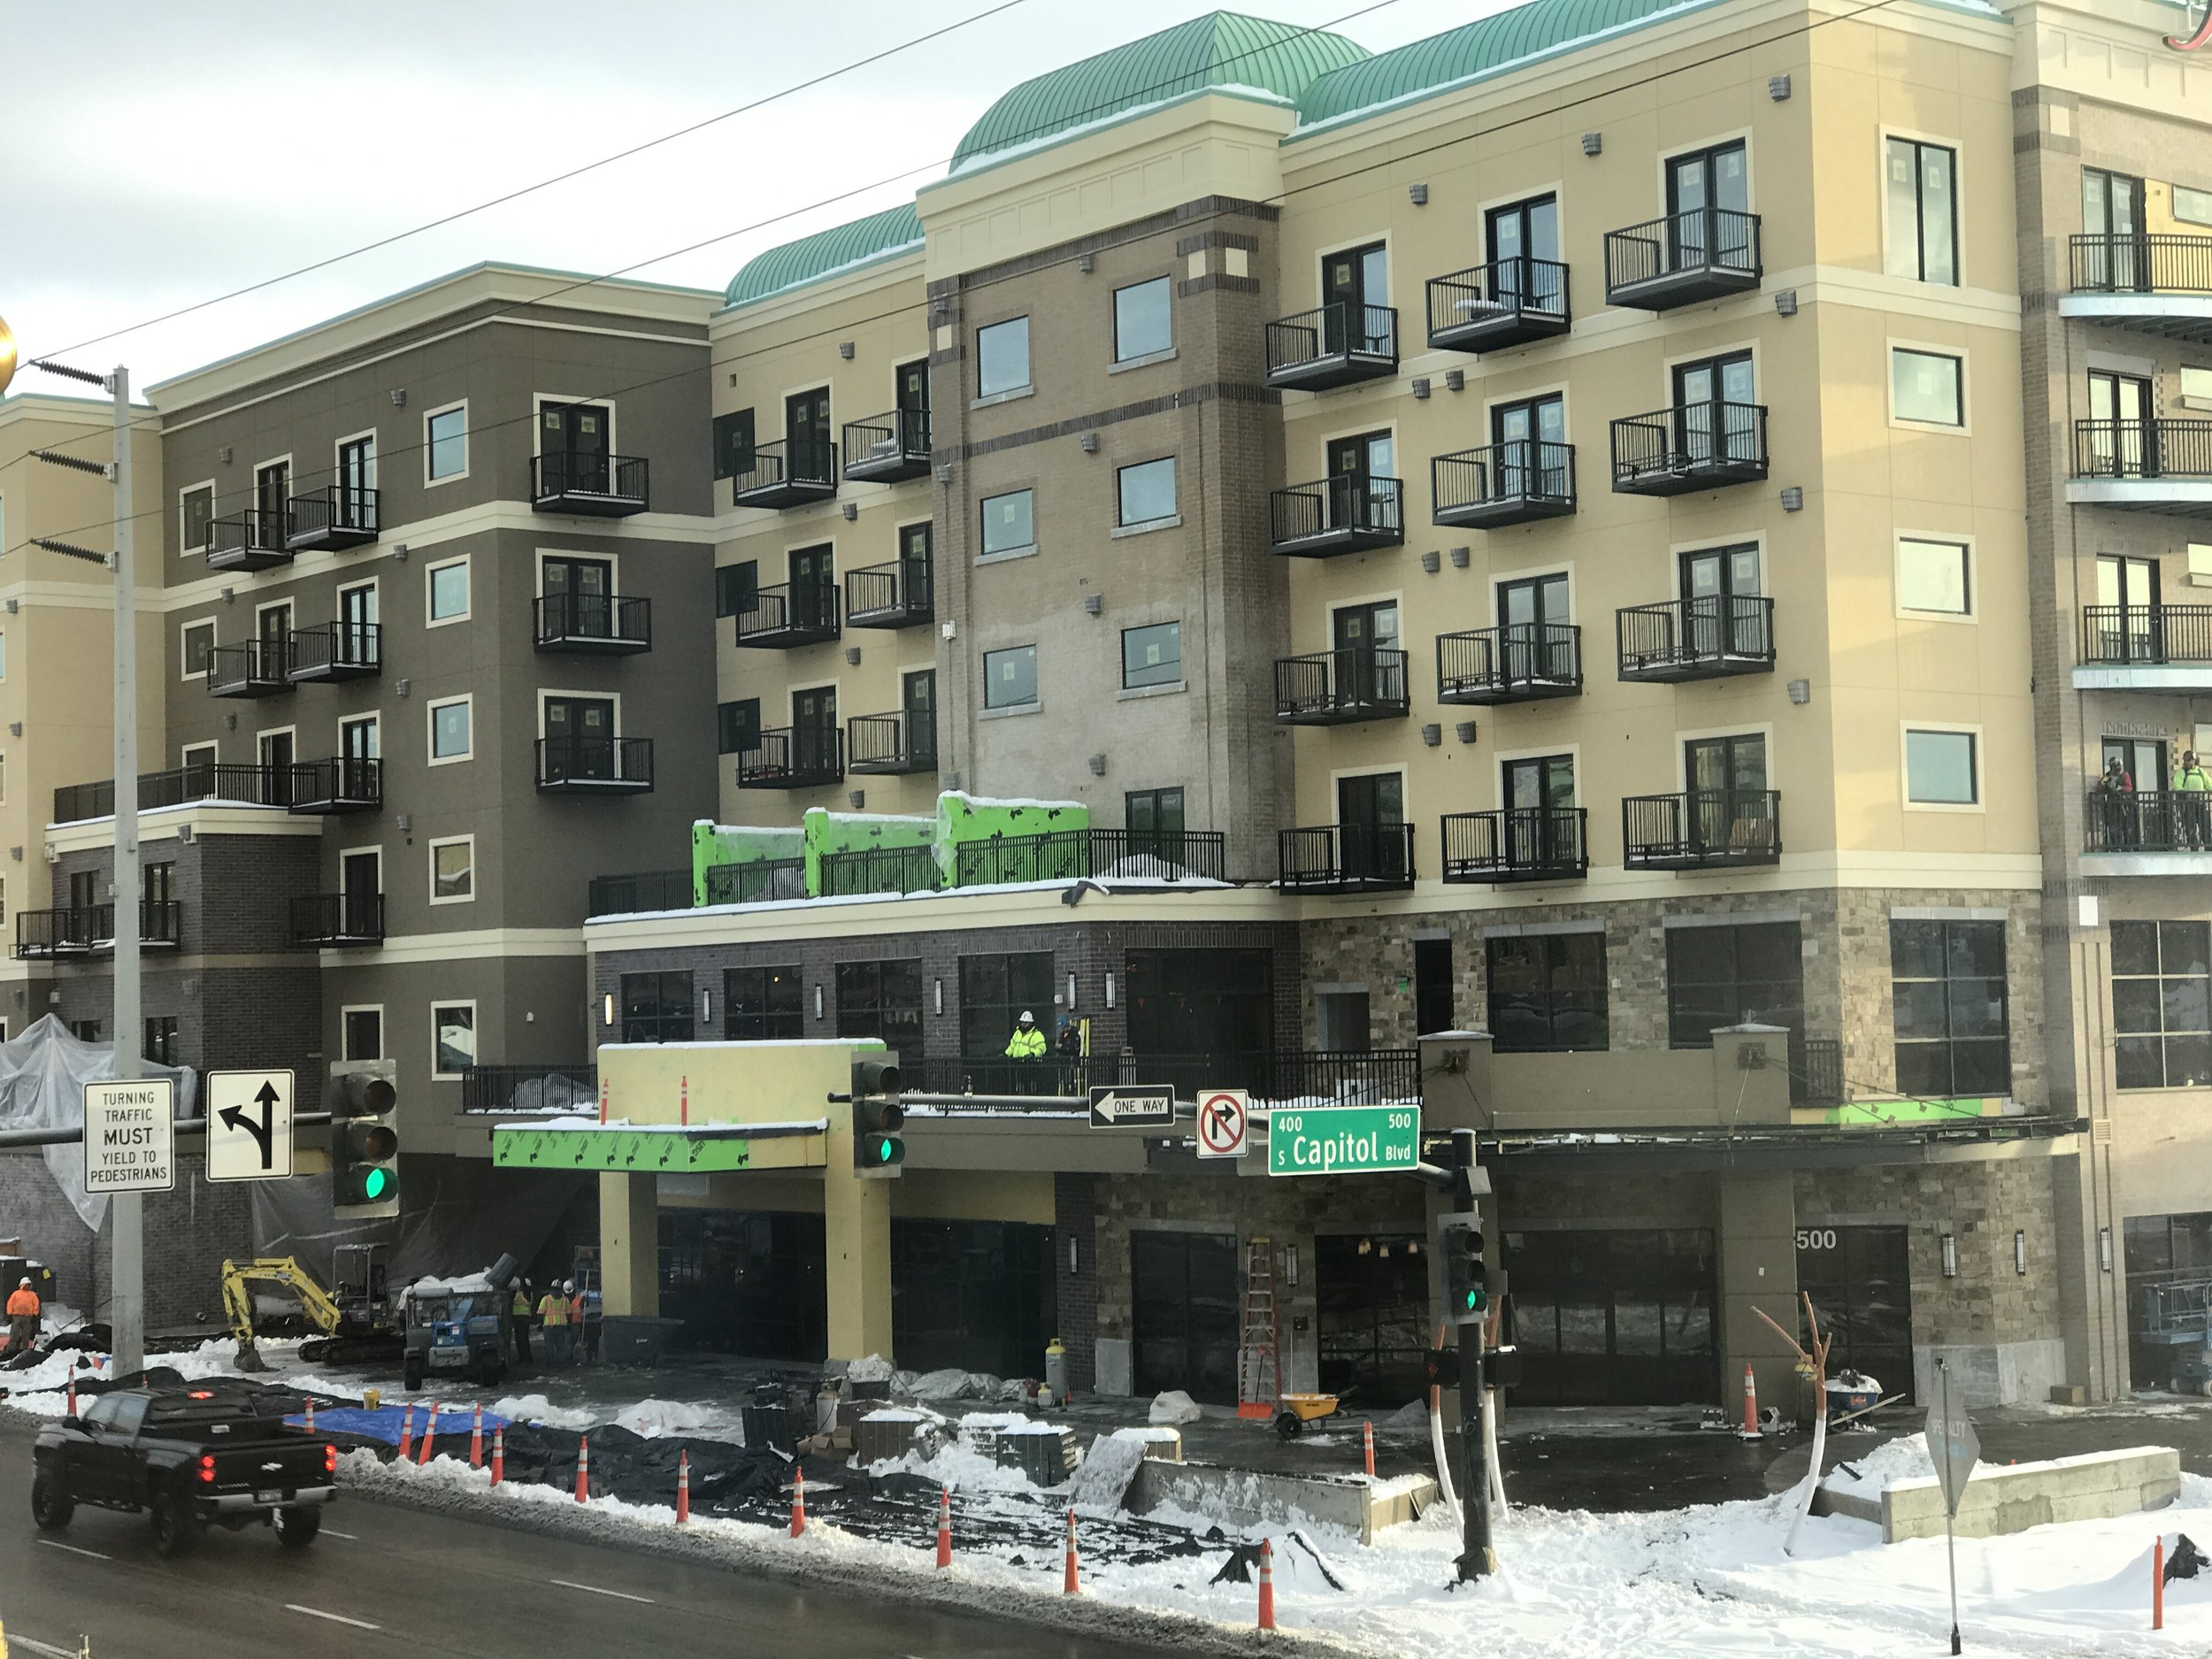 Inn at 500 Capitol on Tuesday 12/26. The Richards site is on the ground floor under the unfinished awning with green construction material visible